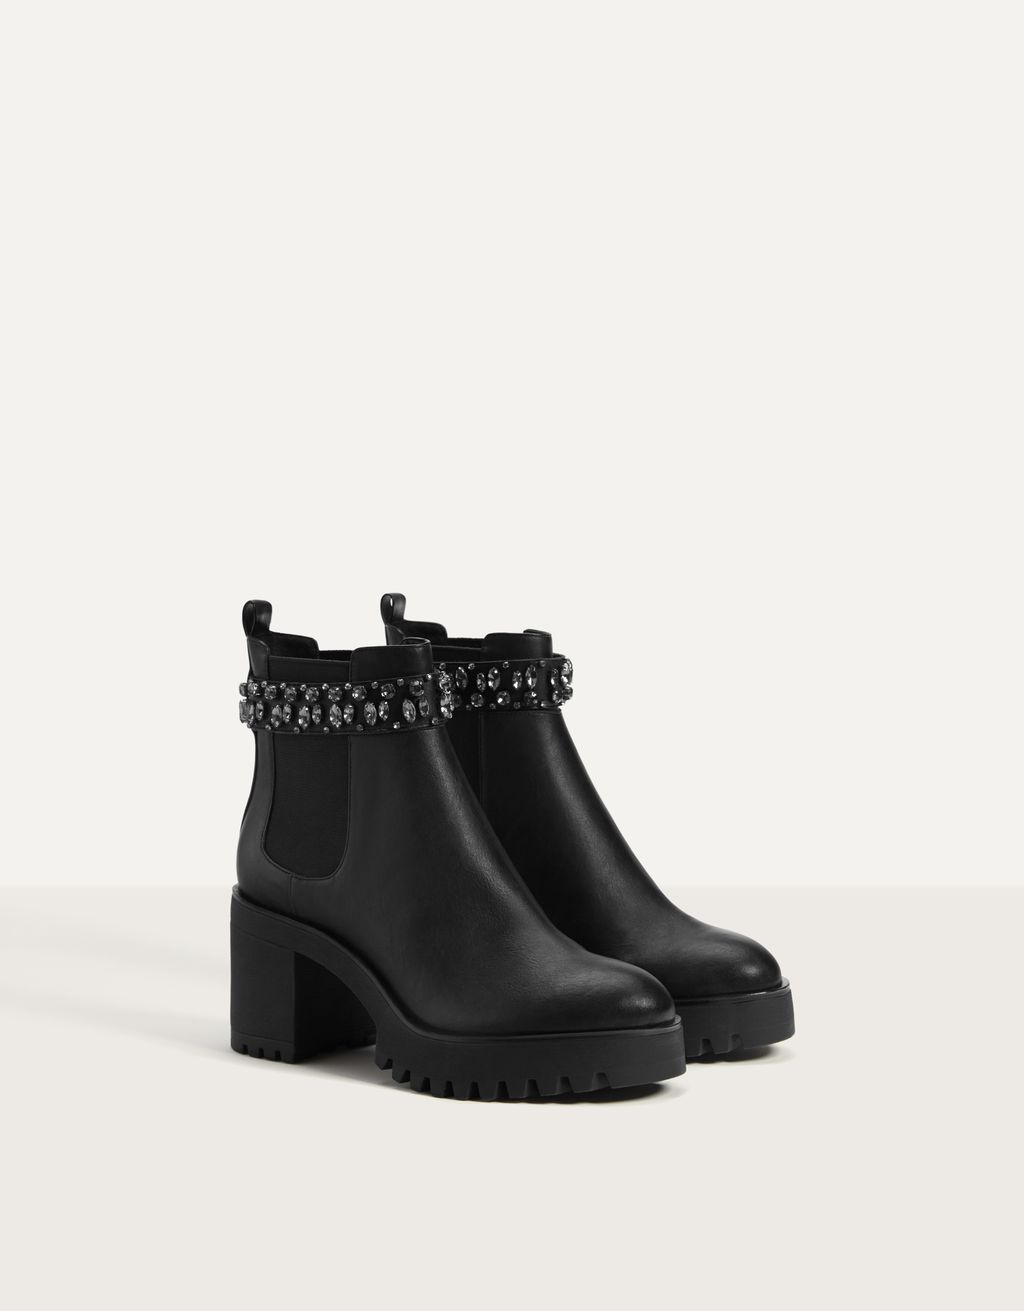 High-heel ankle boots with stretchy side gores and gems